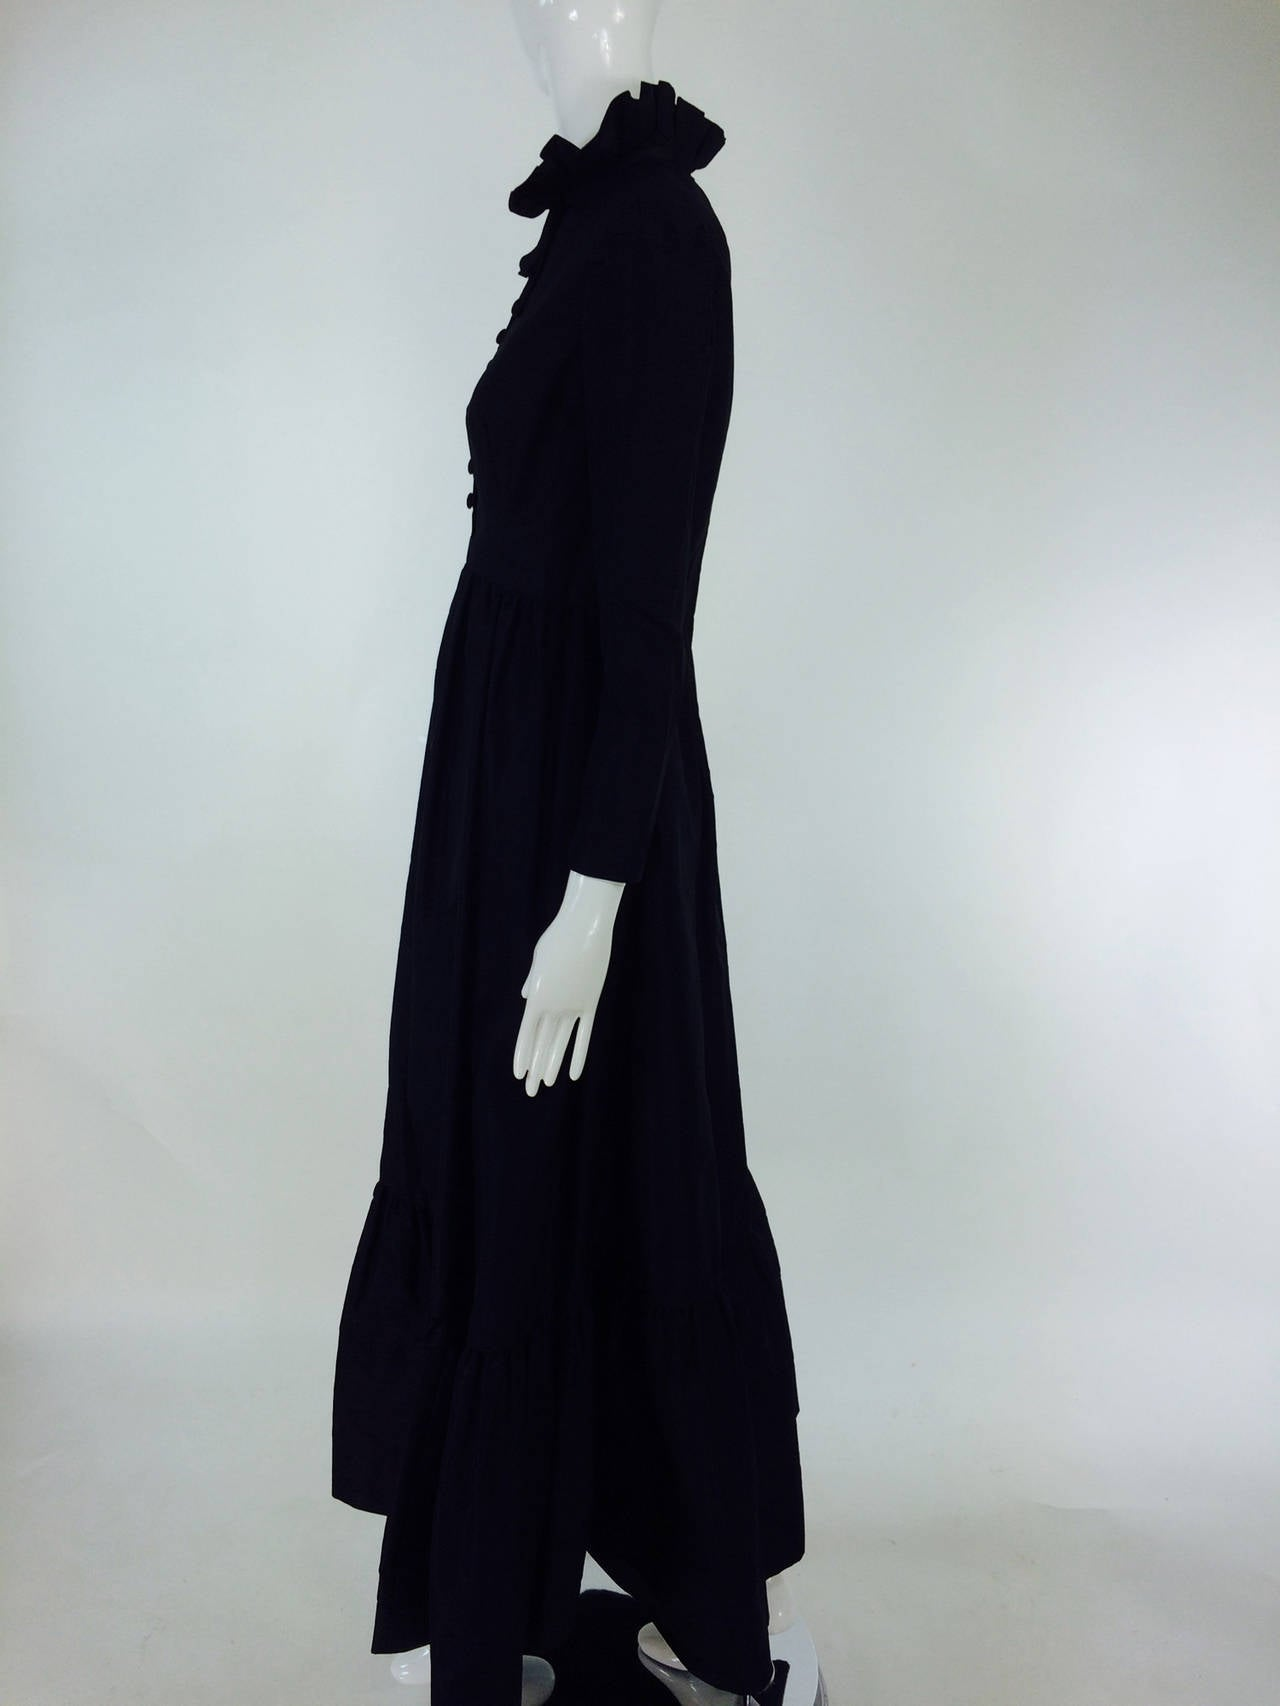 Black Shannon Rodgers for Jerry Silverman black Victorian style gown 1960s For Sale